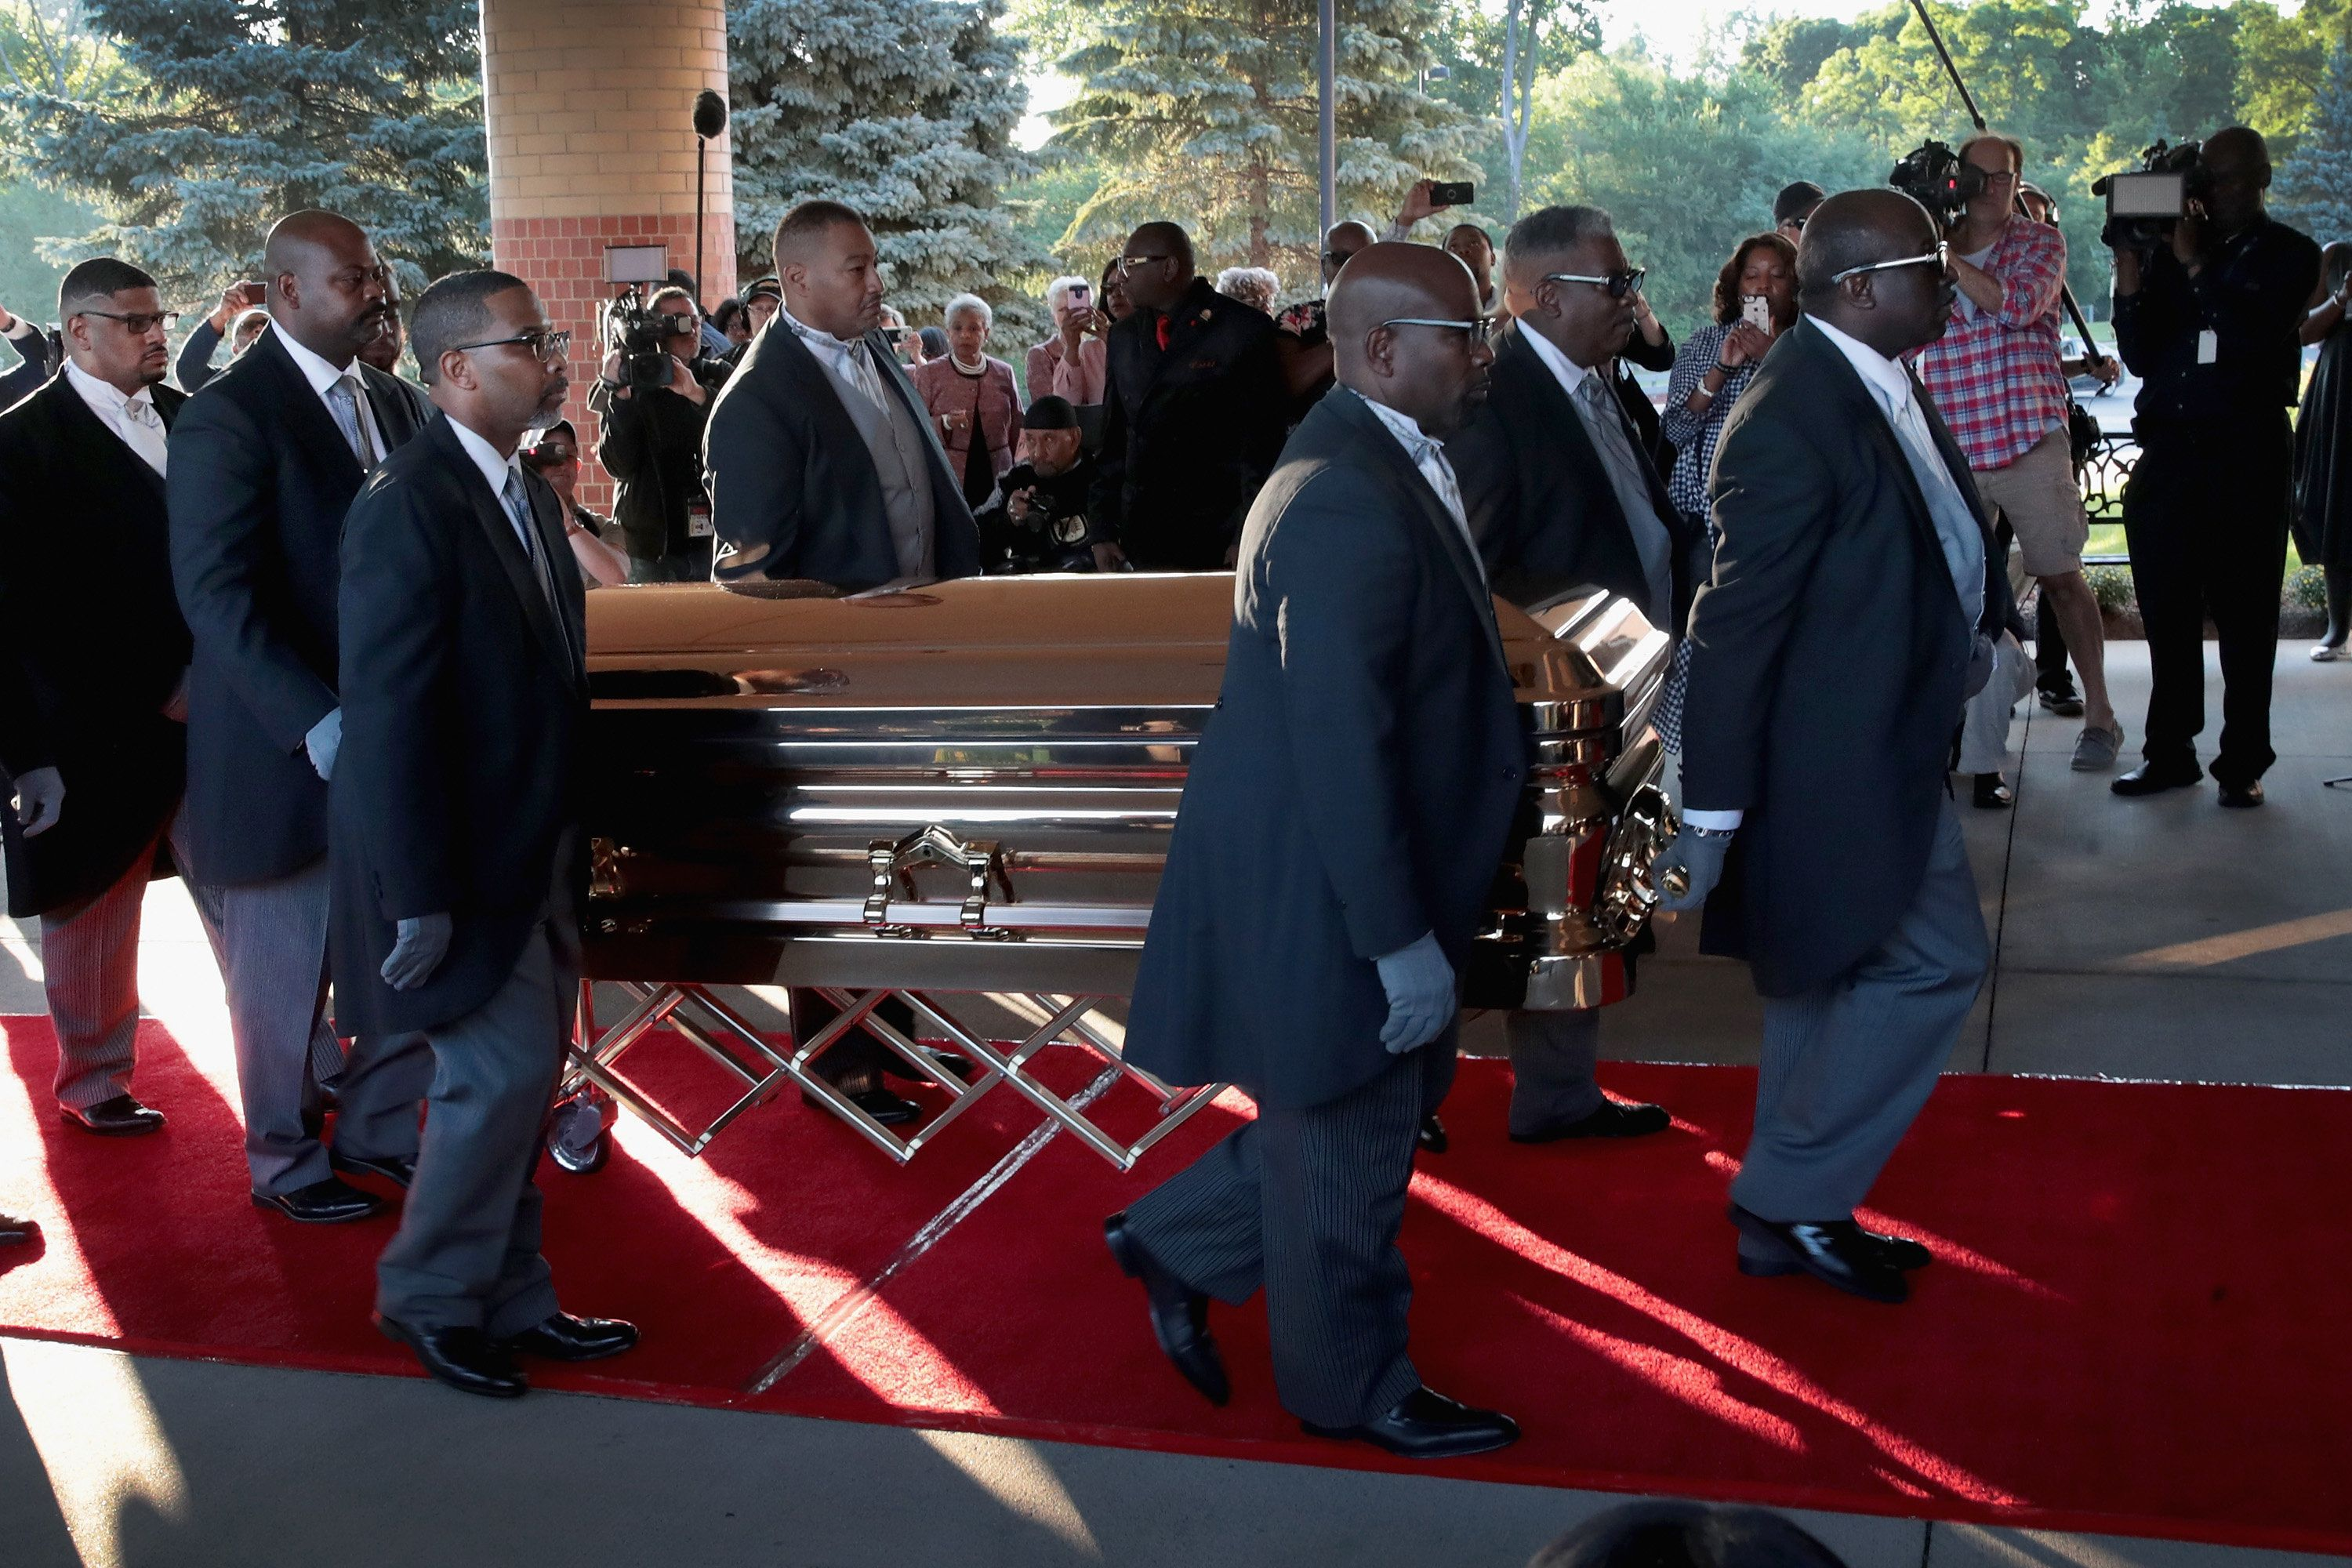 Mourners say farewell to Aretha Franklin, star who touched souls